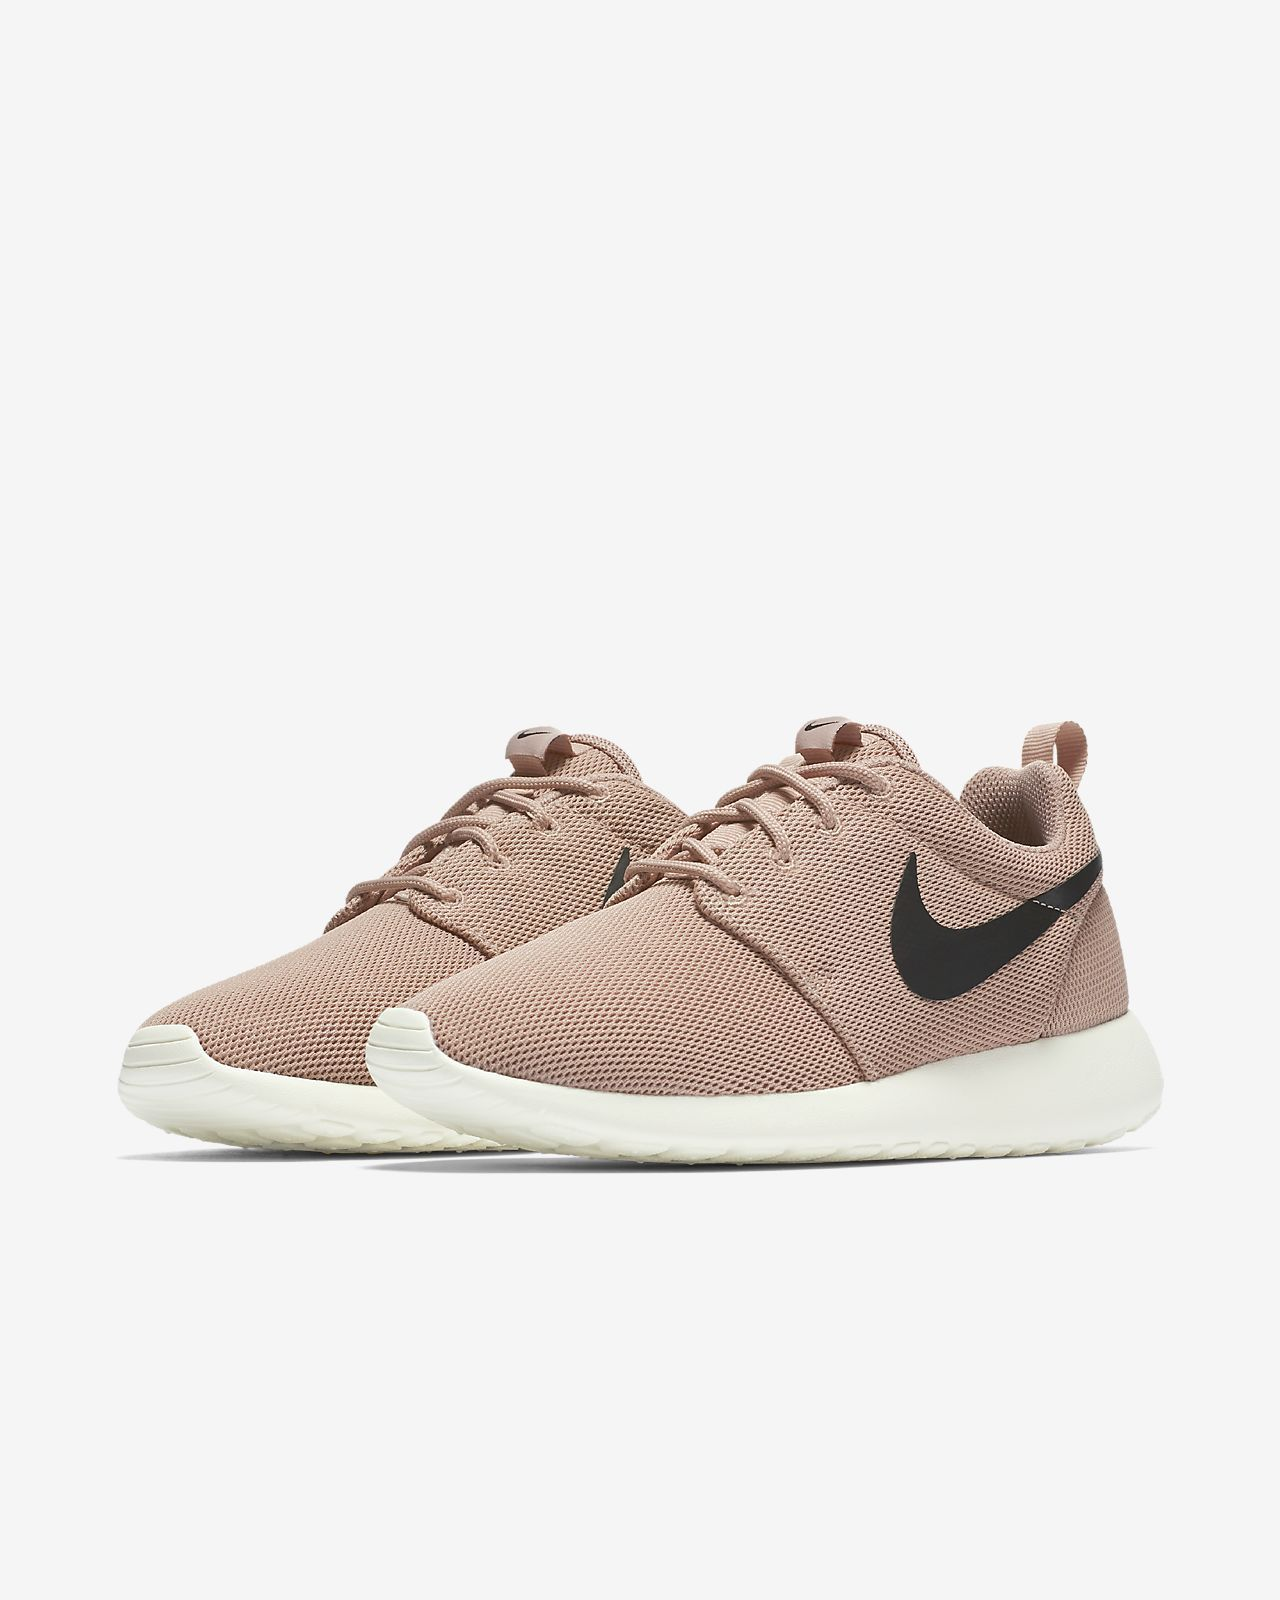 0e1cbc386a8ef7 Nike Roshe One Women s Shoe